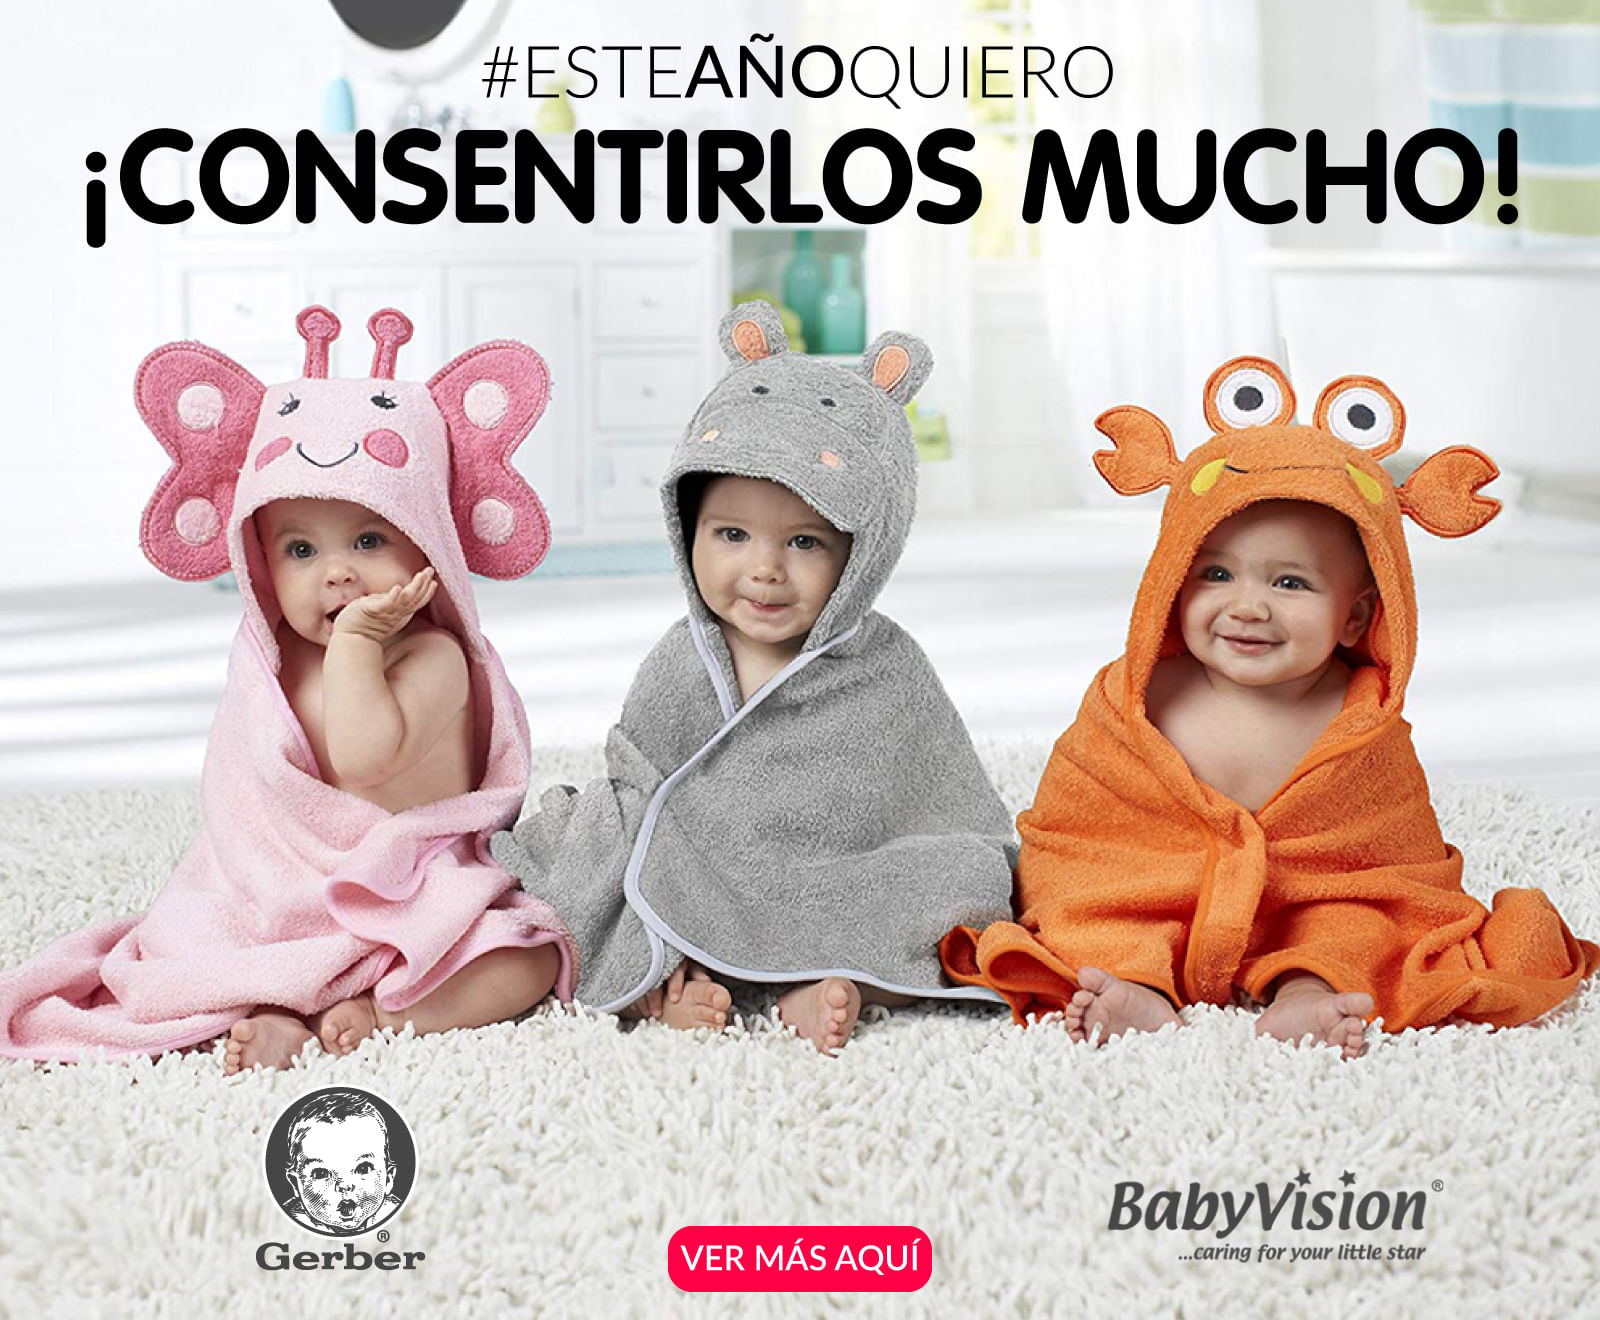 compra moda infantil gerber body bodies pijamas lego ninjago powerwheels hotwheels hot wheels barbie pepa pig peppa pig pepapig dora nstar wars star wars carro colección triciclo bici bicicleta pedal pedales patines juego de mesa twister game of thrones dr who barbie pony my little pony muñeca cry baby hatchimal hachimal htachimal HATCHIMALS hatchimal grande moda infantil juguetes navidad oferta black friday pj maks pjmasks niños ropa lego juguetes importados fisher price graco coches mecedoras chicco corral corrales cunas gimnasio mattel barbie hasbro online colombia cyber lunes fisherprice carters